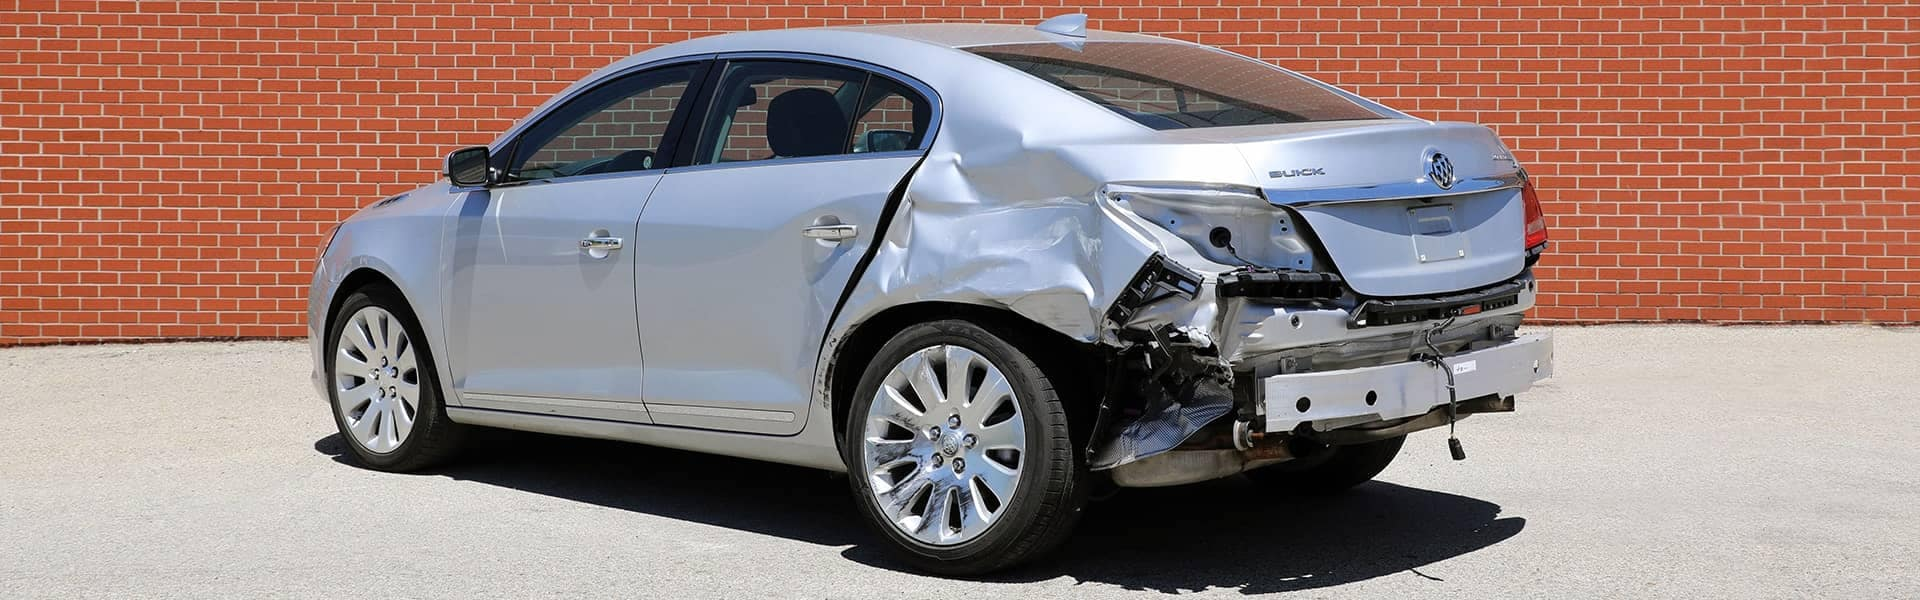 vehicle with collision damage